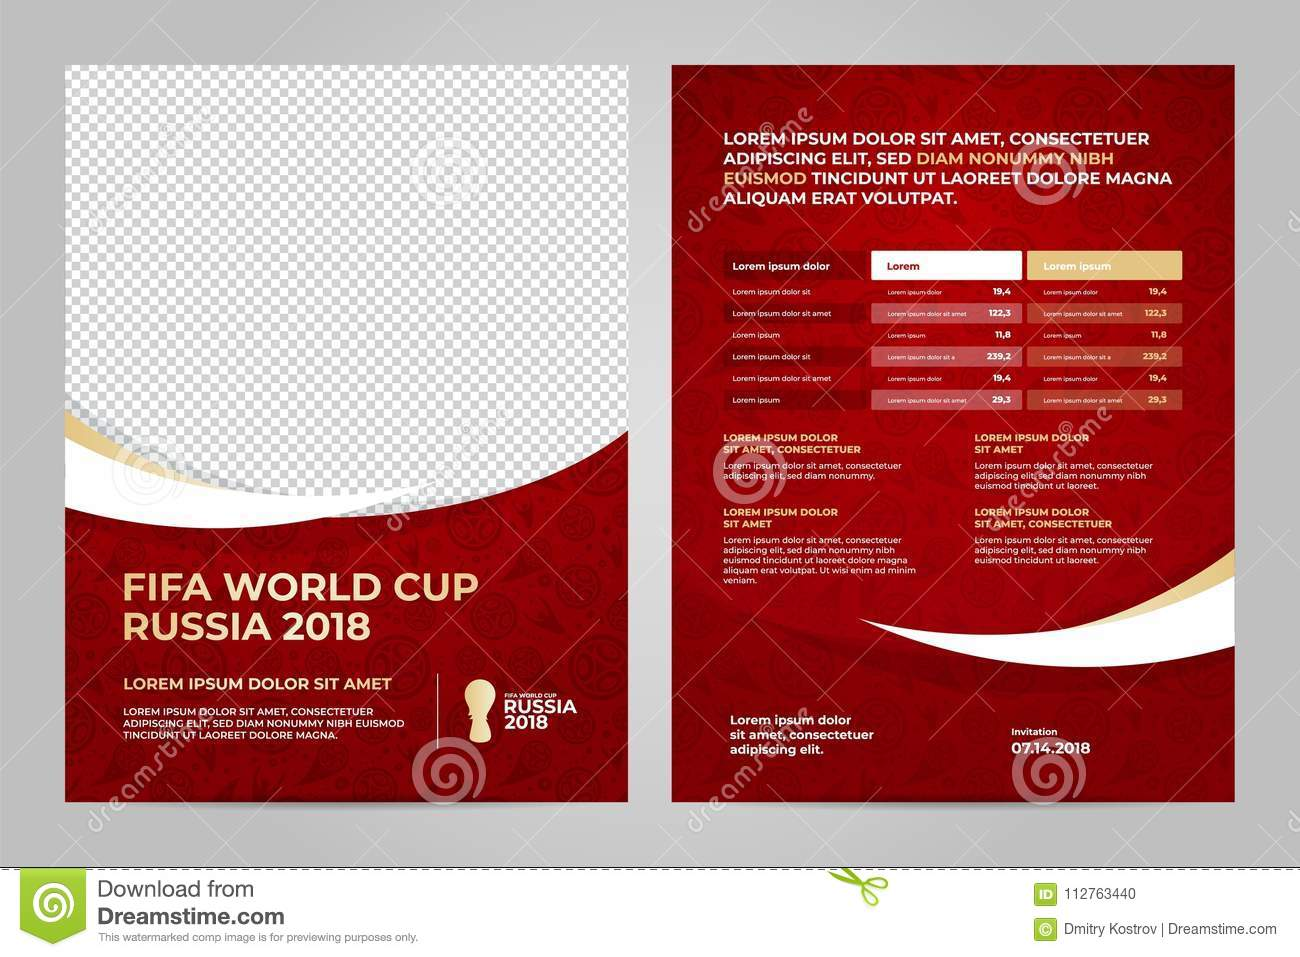 Russia 2018 cup template editorial image illustration of football set layout template design maxwellsz